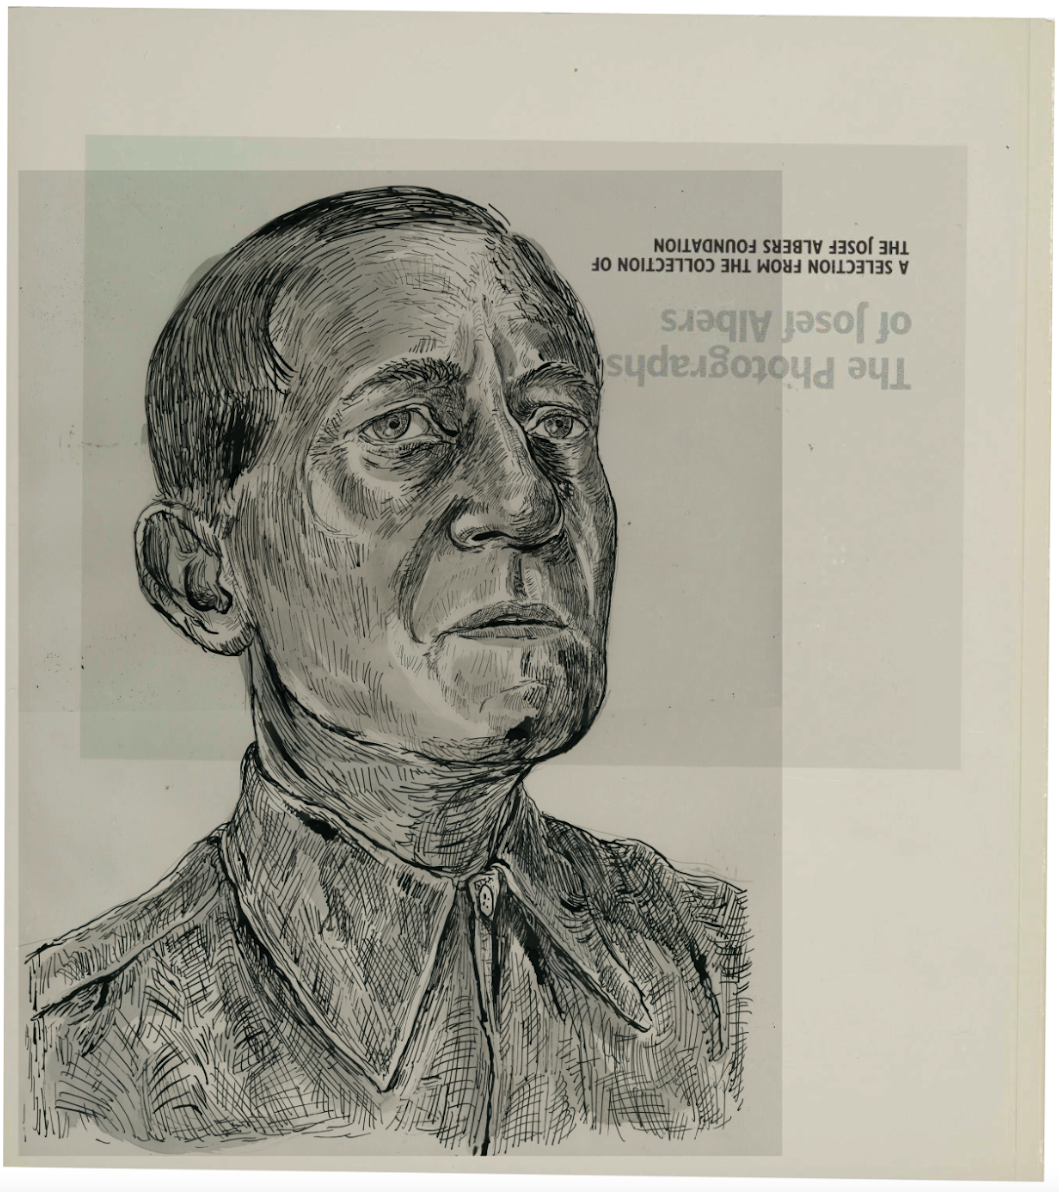 J.Albers portrait at Bauhaus